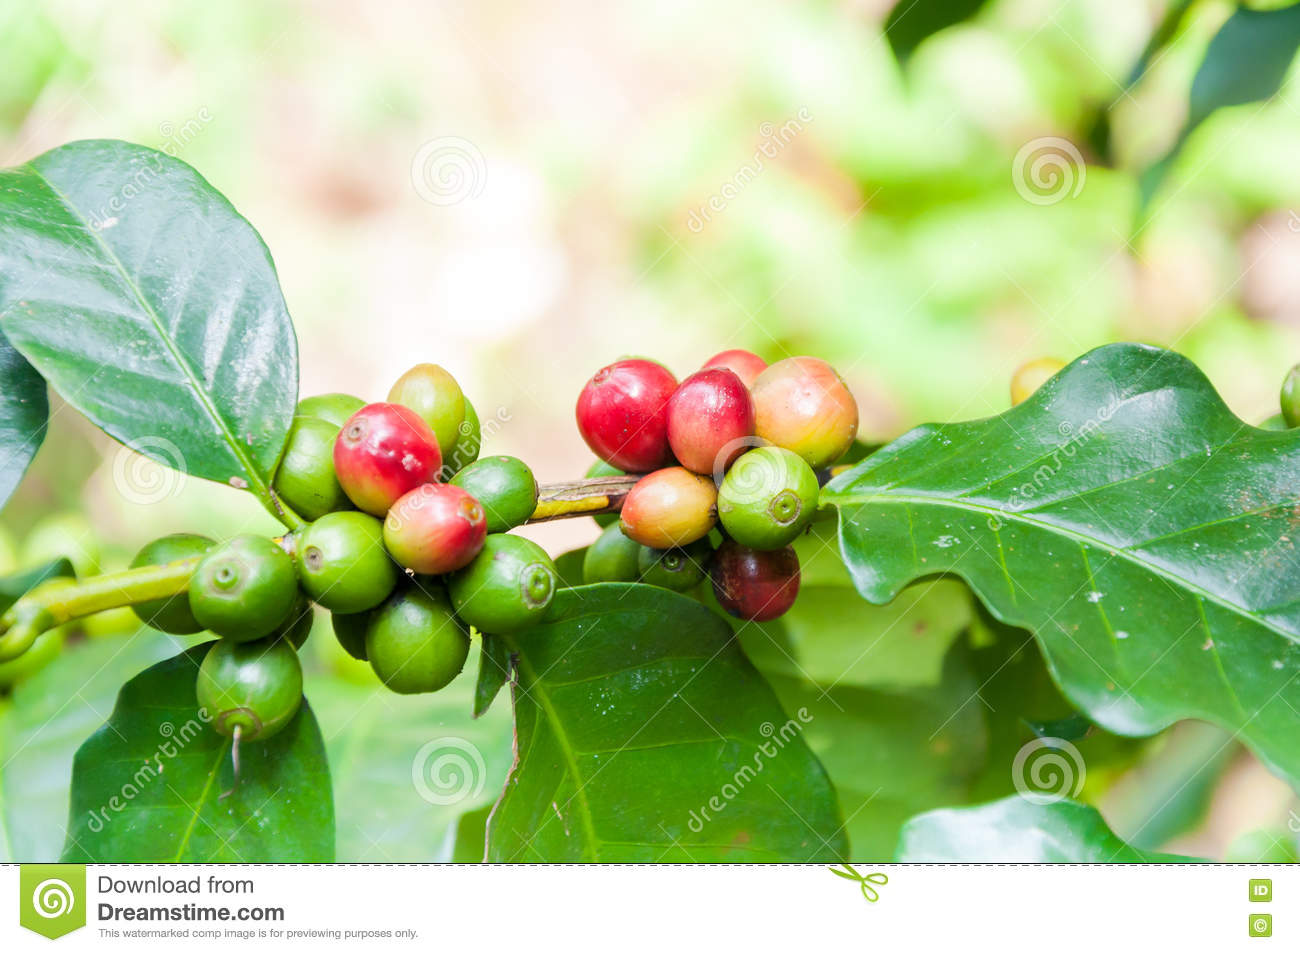 les grains de café frais en café plante l'arbre photo stock - image